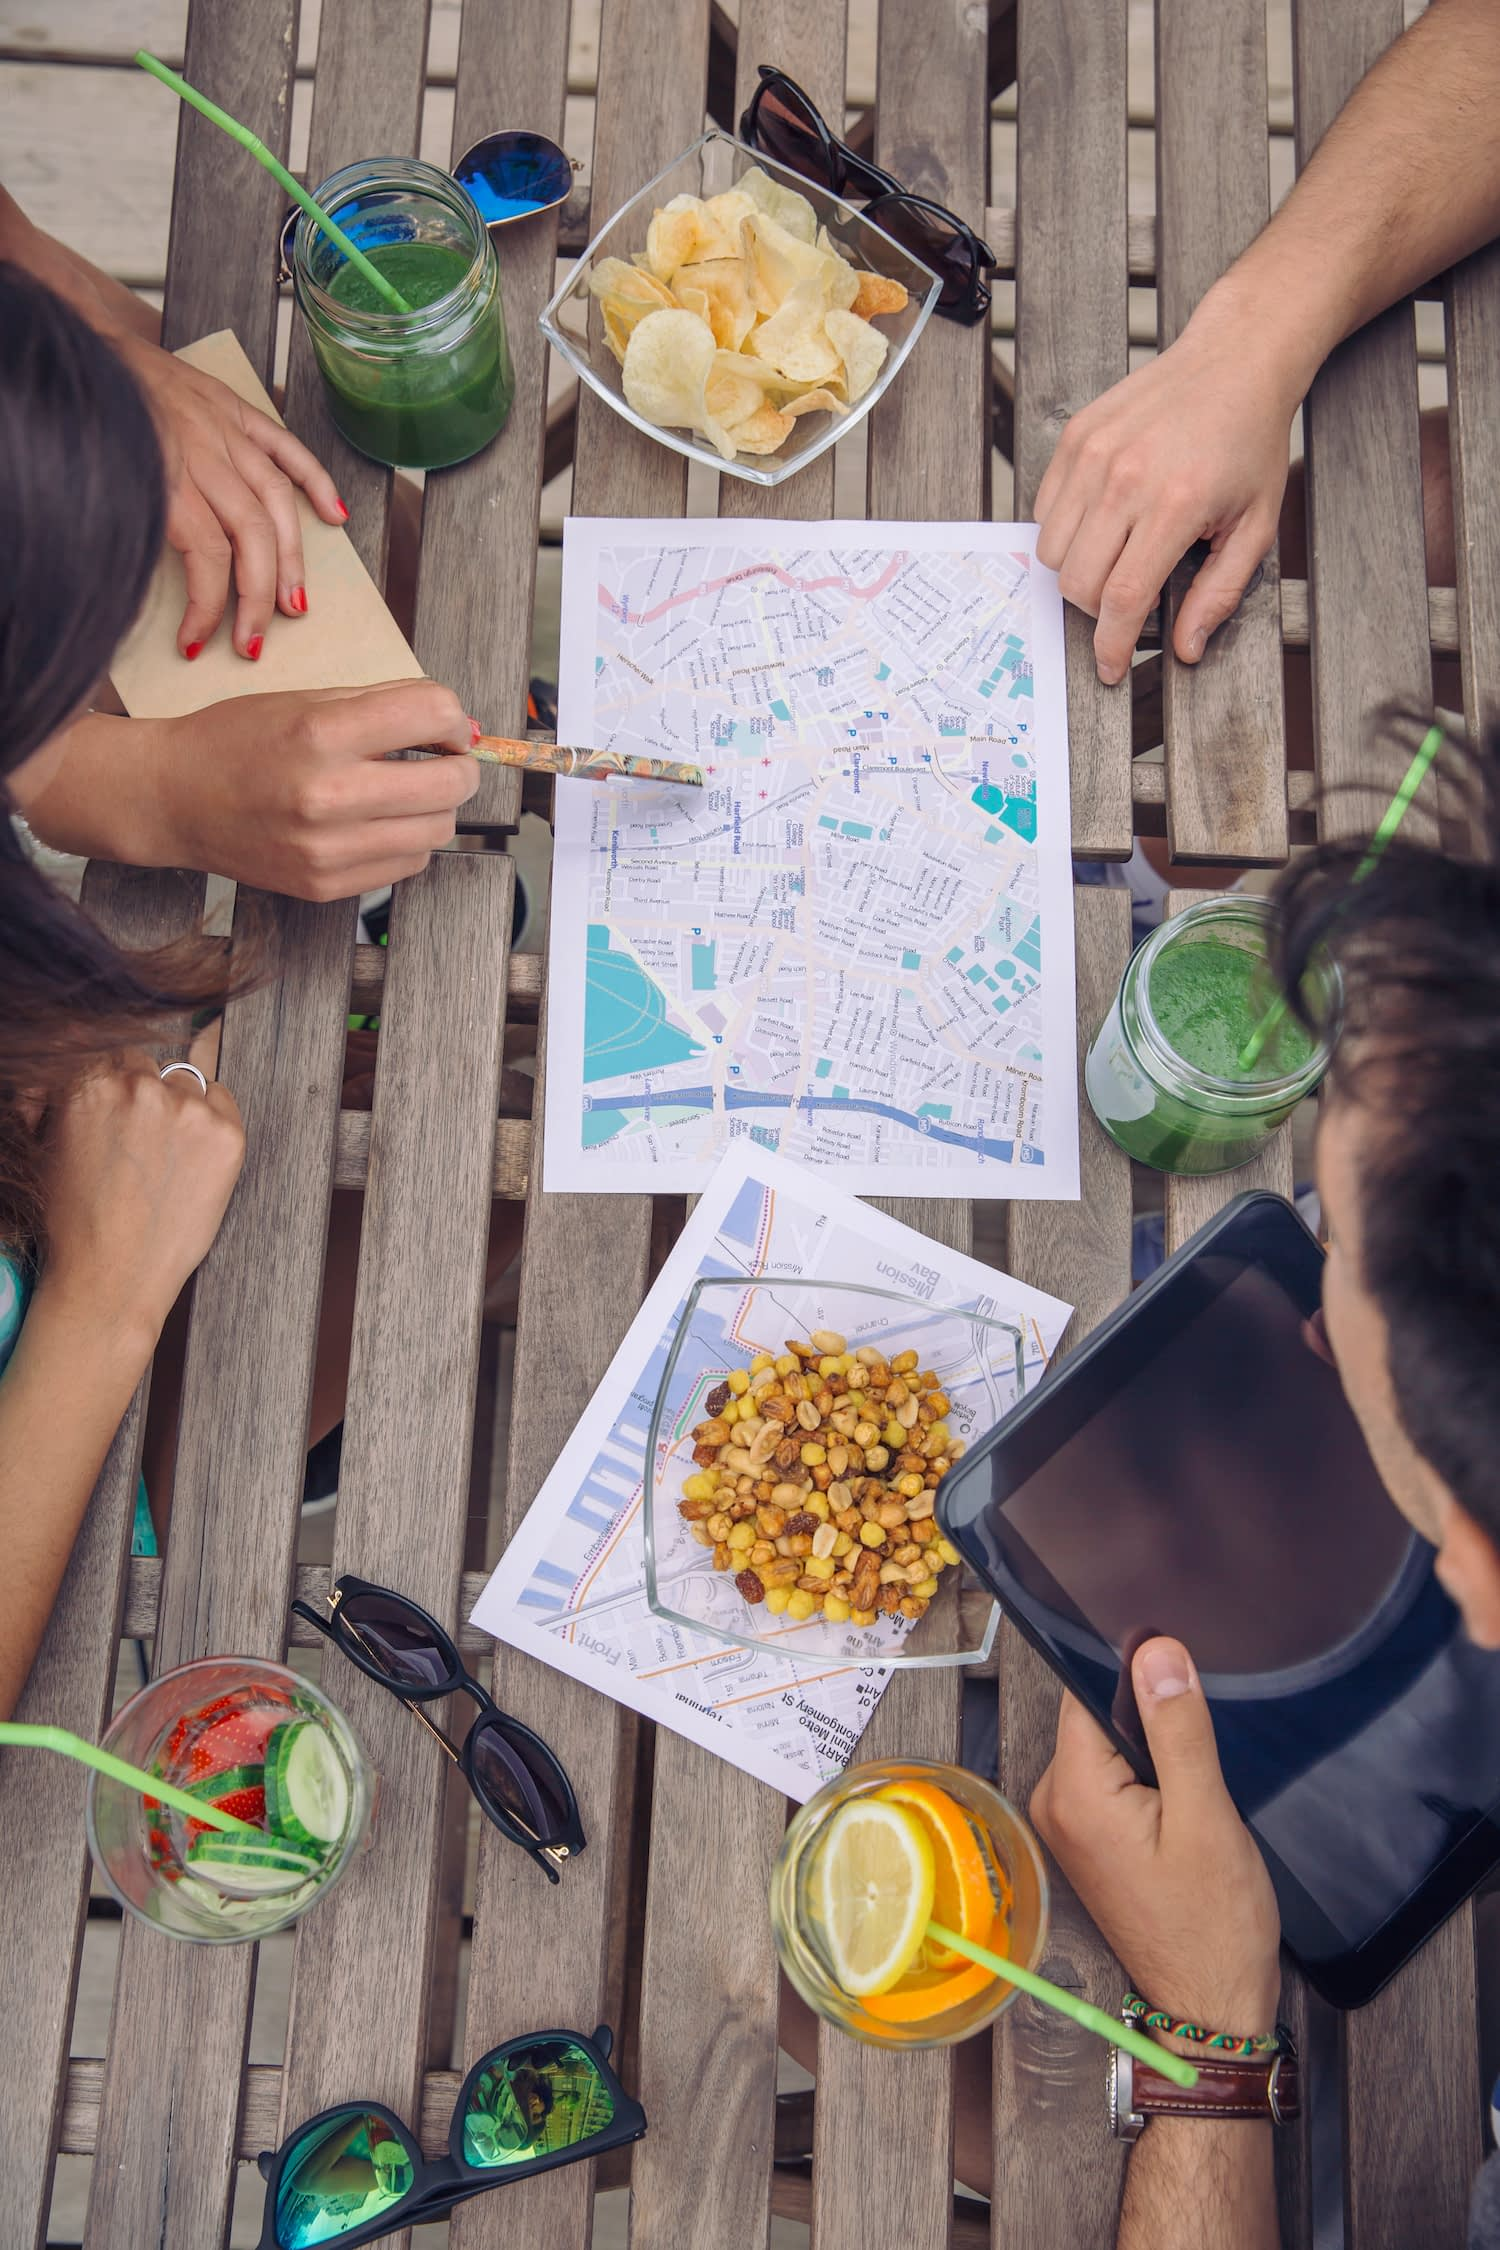 Young tourists enjoying variety of snacks while studying map, deciding where to go next.